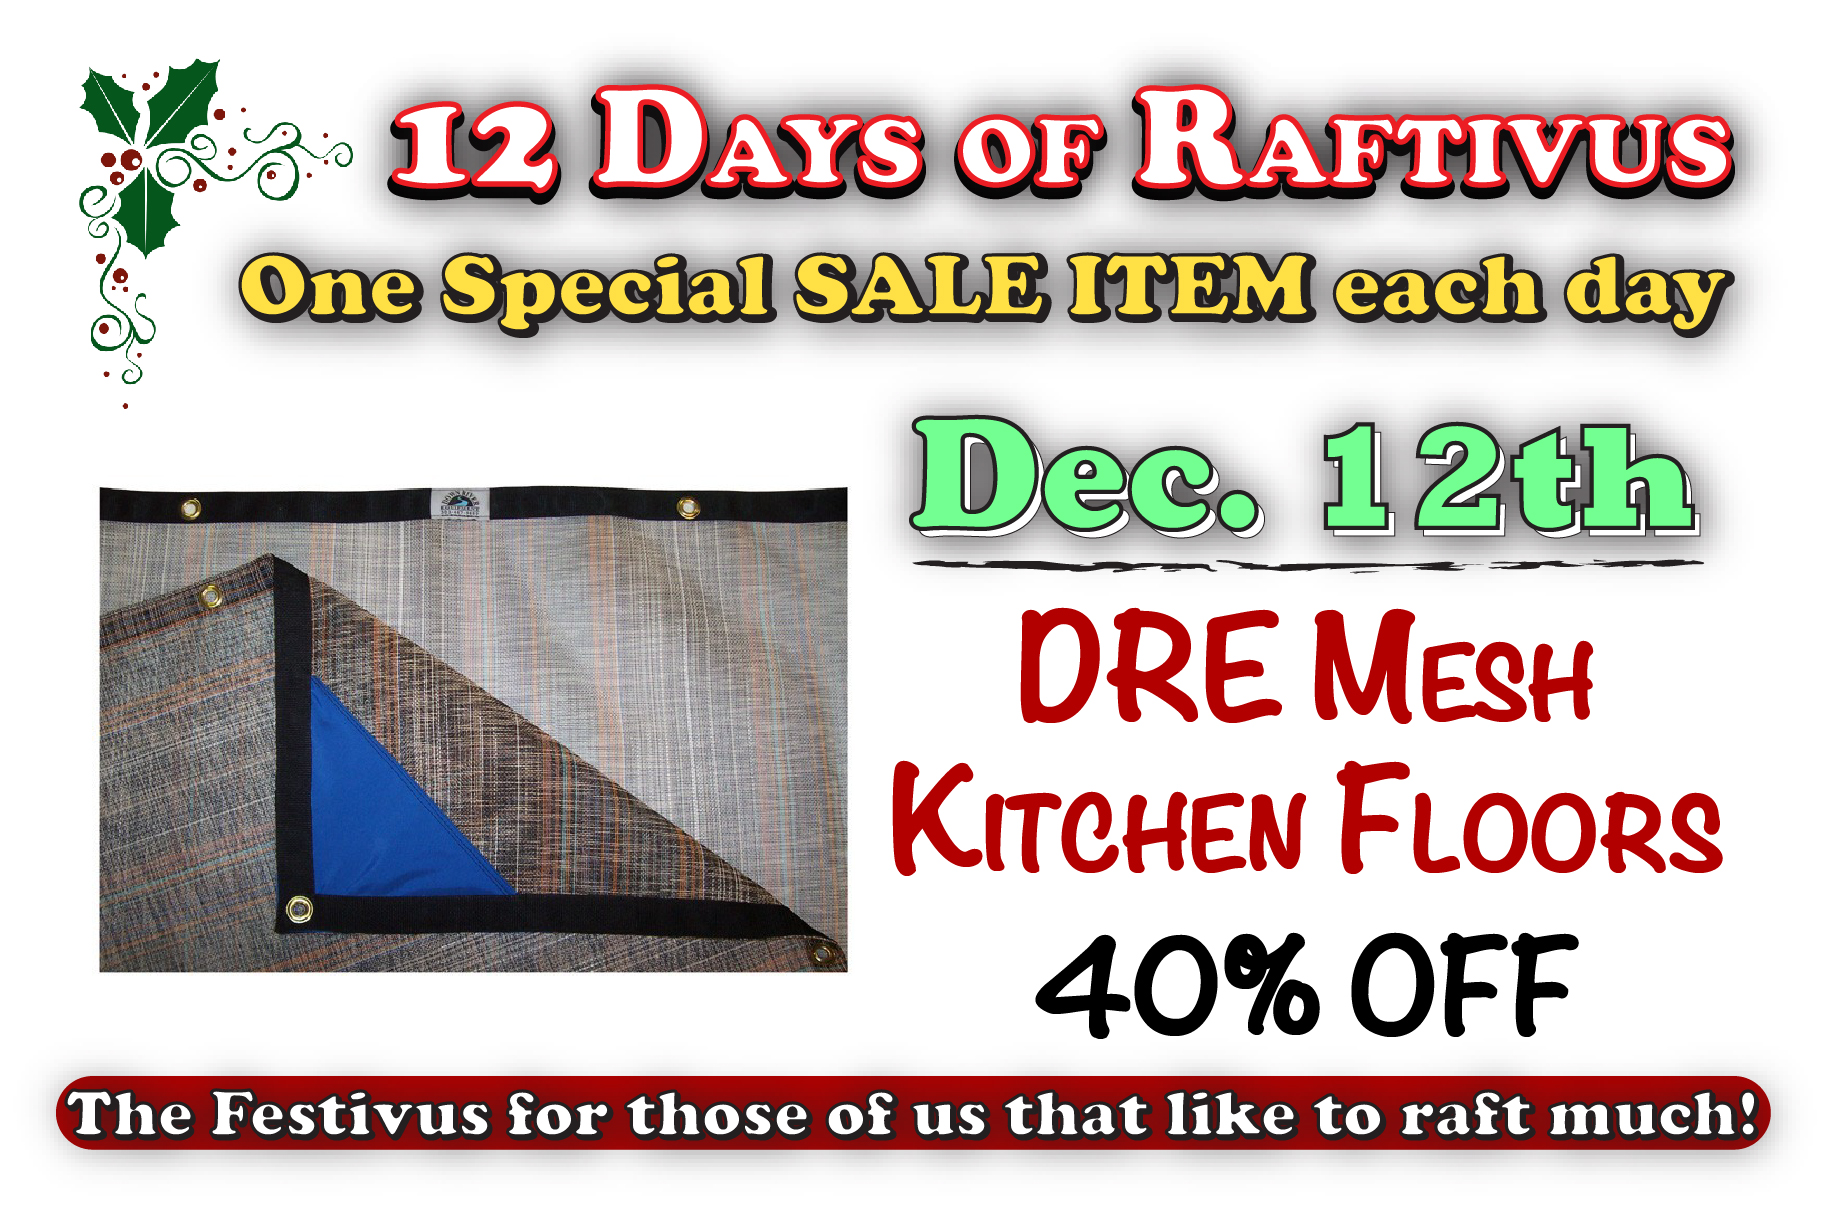 Click image for larger version  Name:12 Days of Raftivus Sale Moving Banner-Dec. 12-New.jpg Views:90 Size:1.21 MB ID:9179